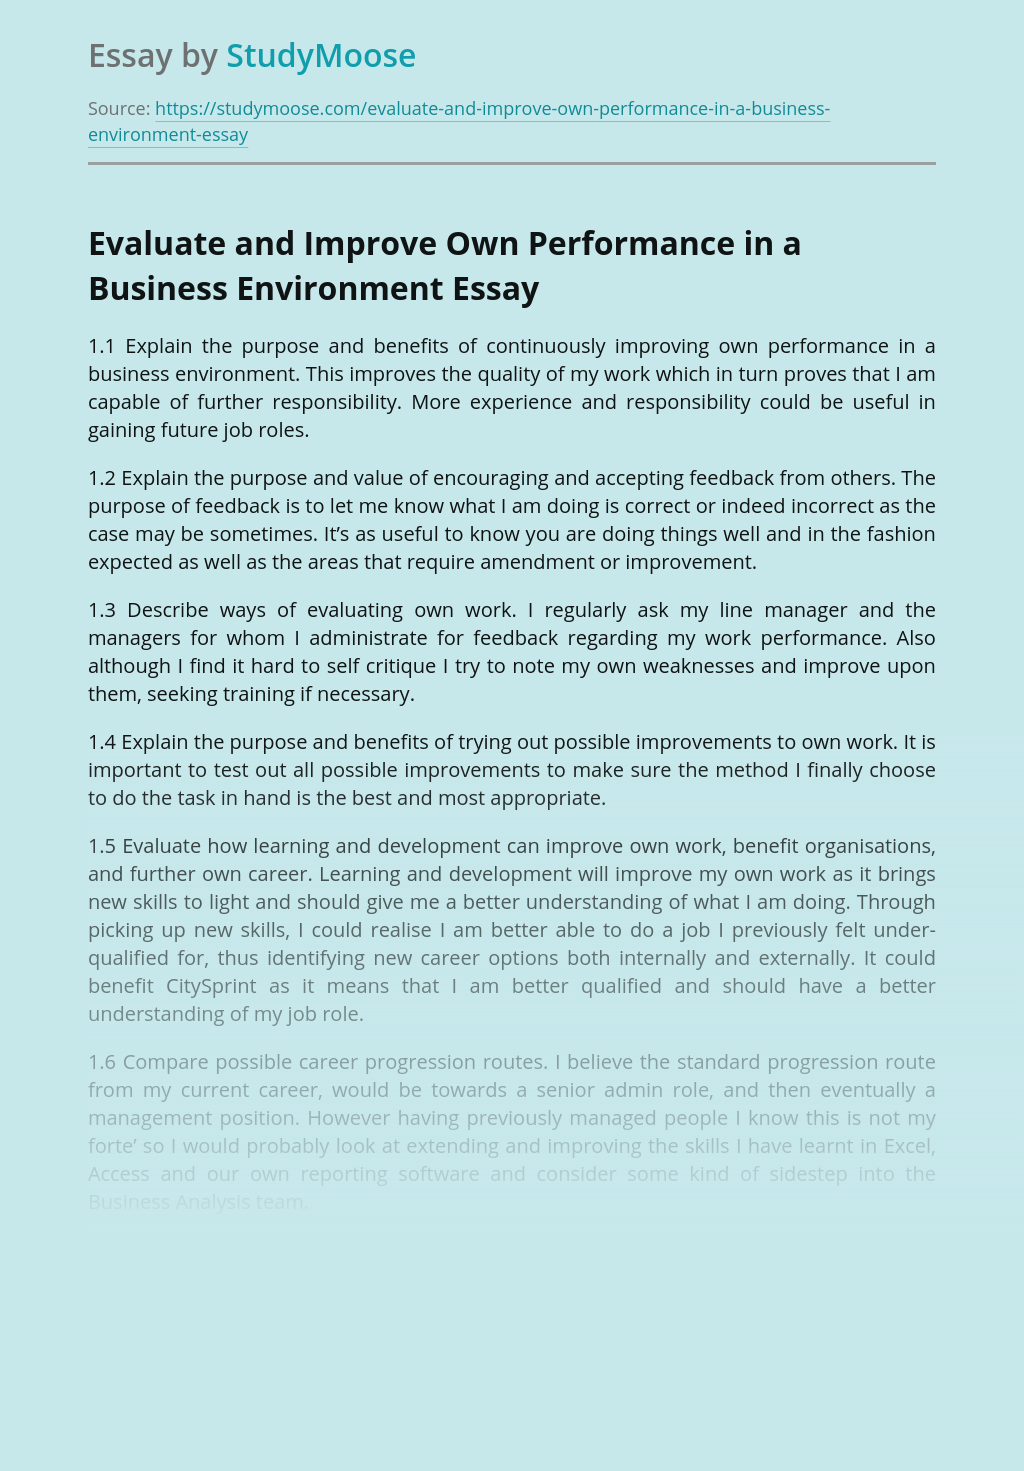 Evaluate and Improve Own Performance in a Business Environment